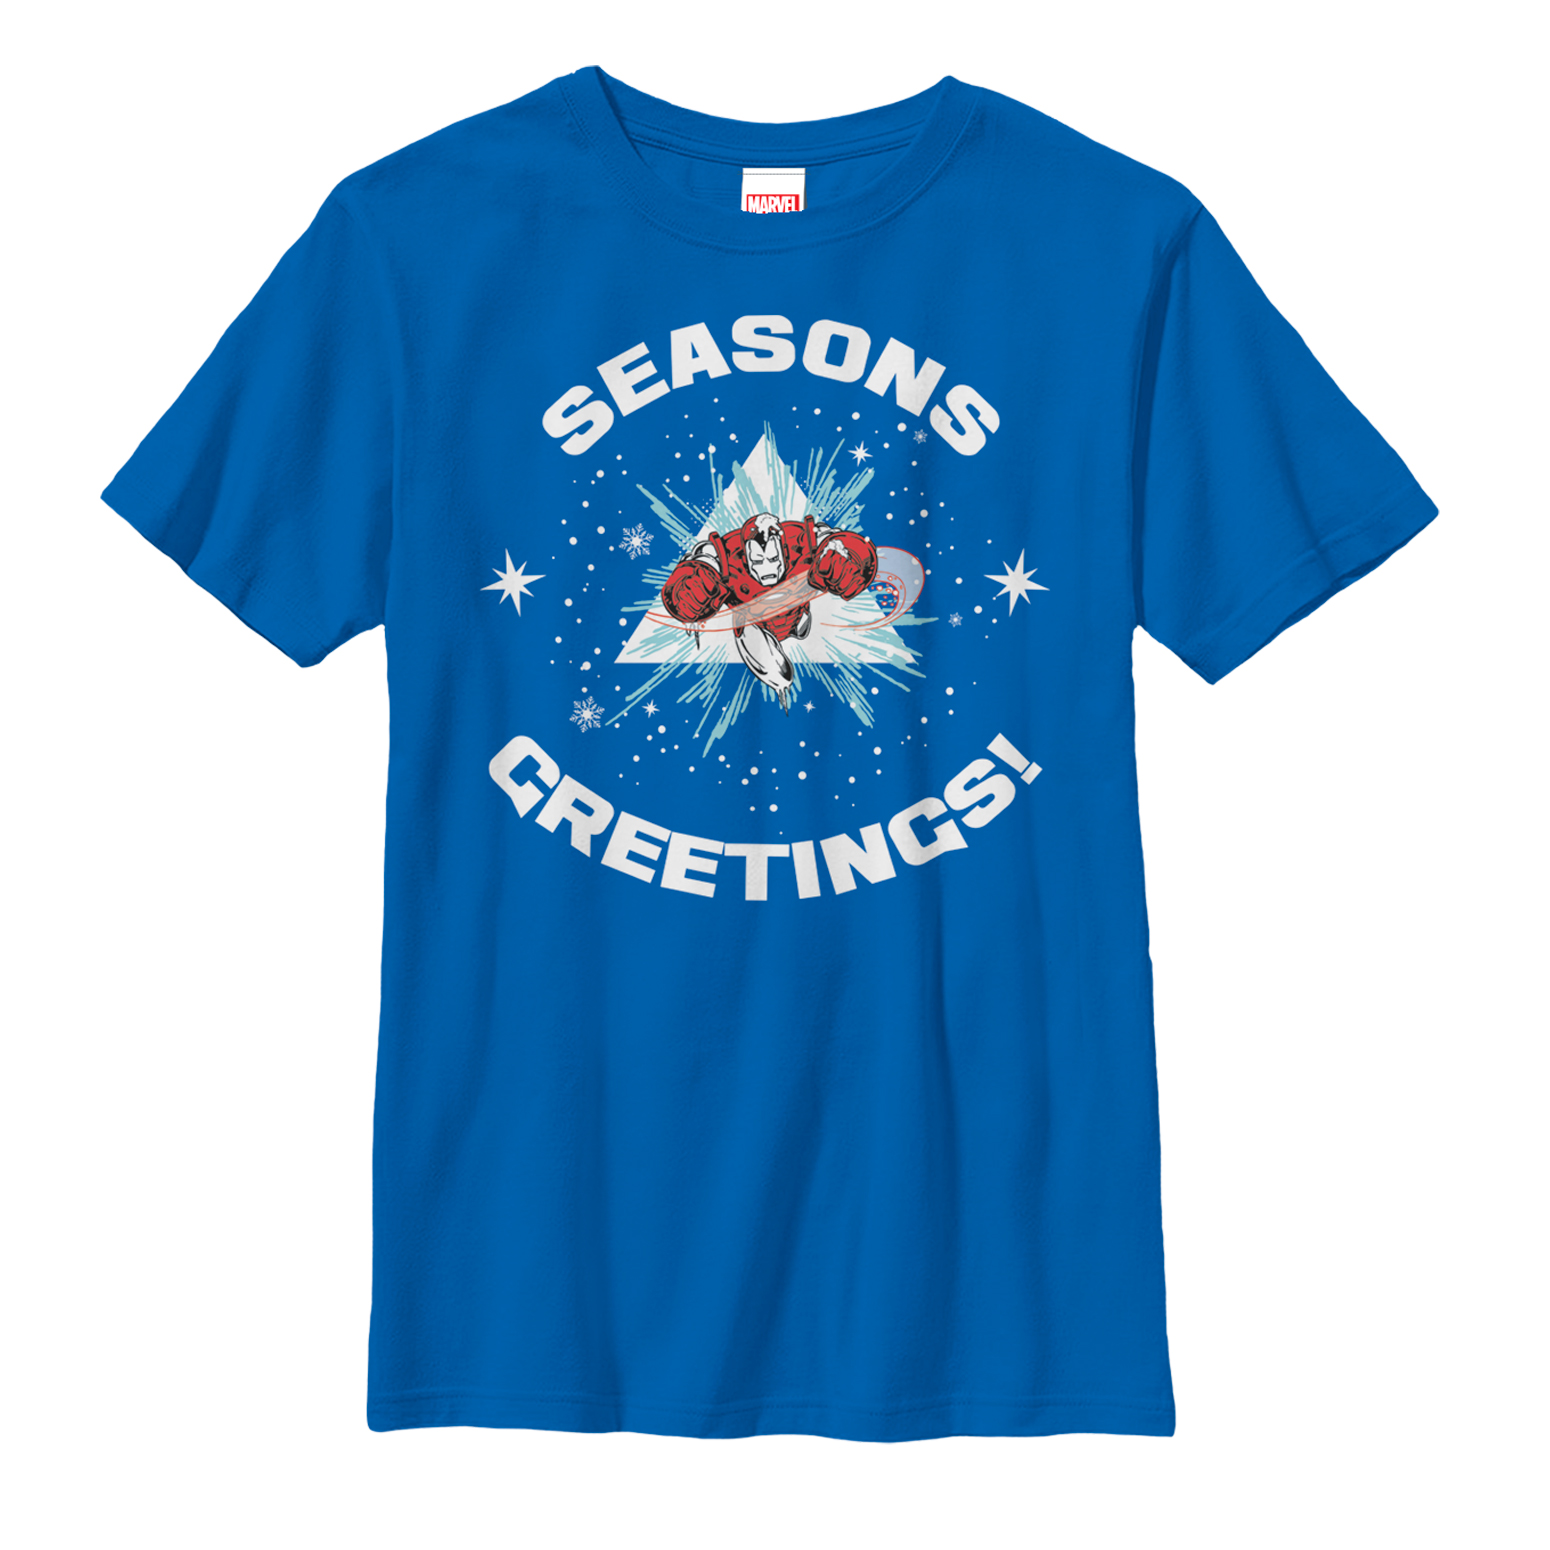 Marvel Boys' Christmas Iron Man Season's Greetings T-Shirt